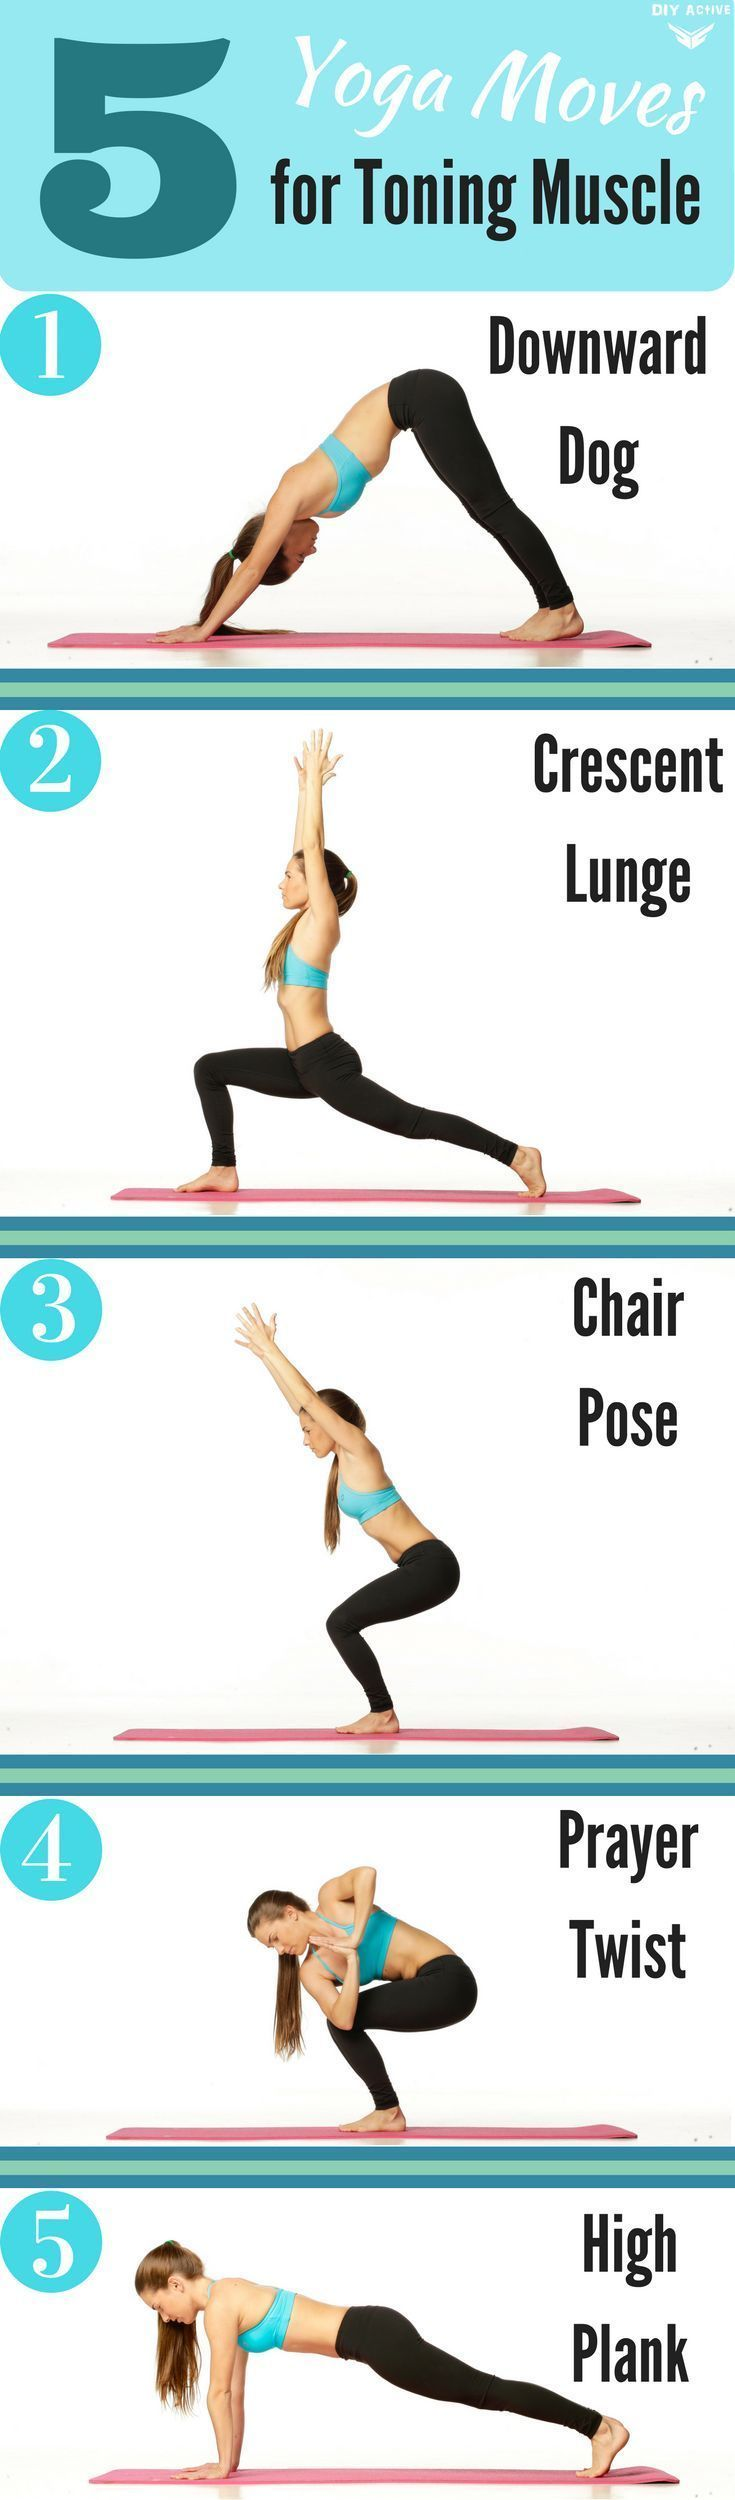 5 Yoga Moves for Toning Muscles via @DIYActiveHQ #workout #yoga #health